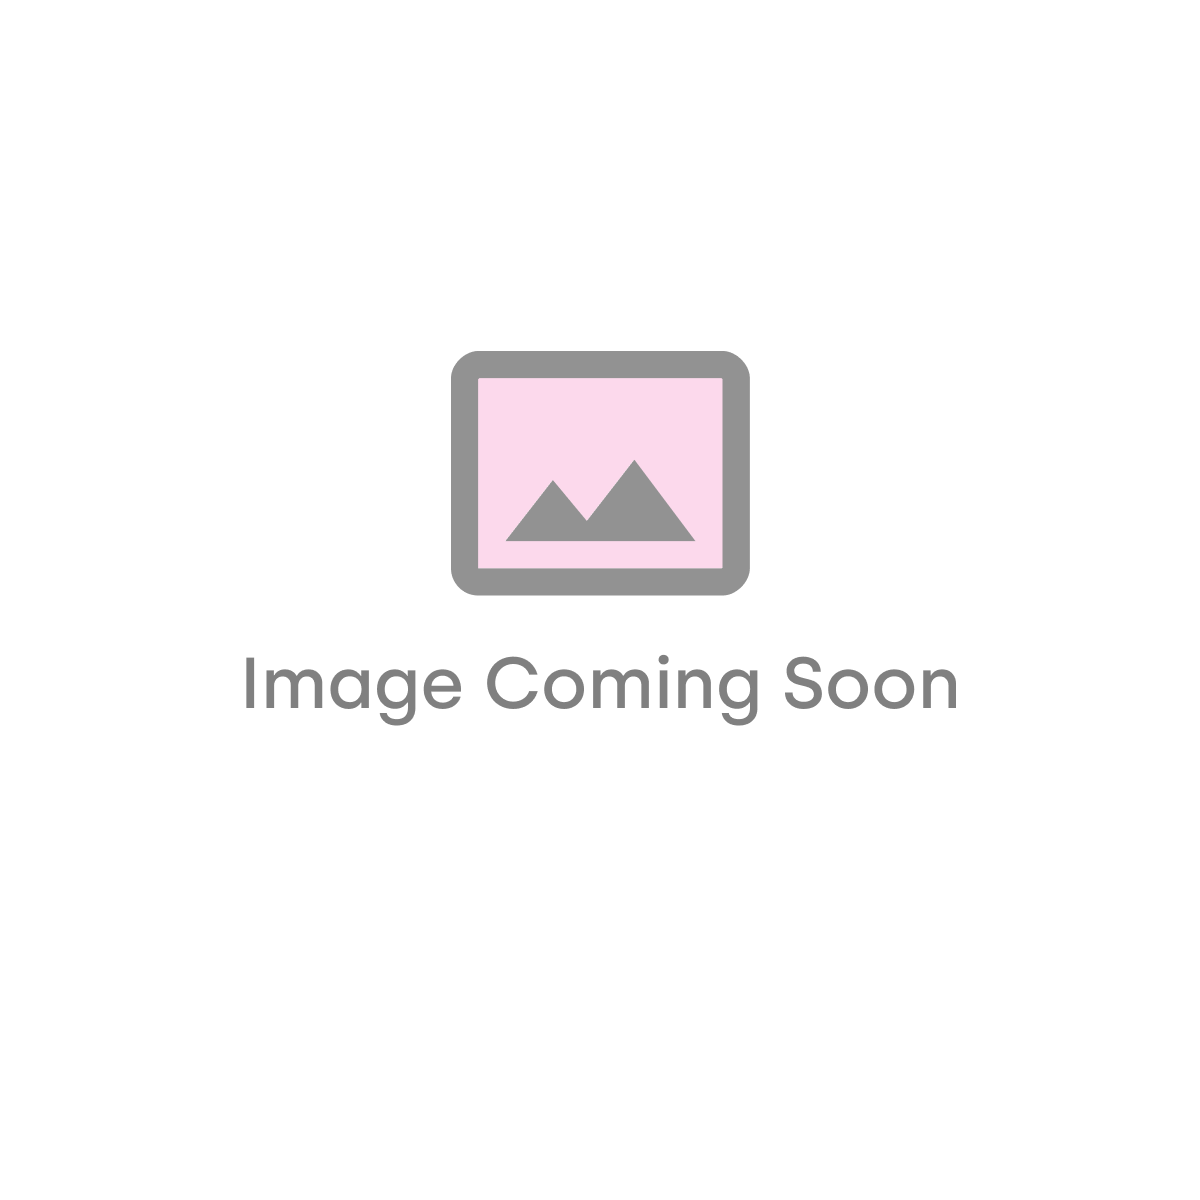 Aquadart 10 1000mm Wetroom Panel - Clear Glass (18672)